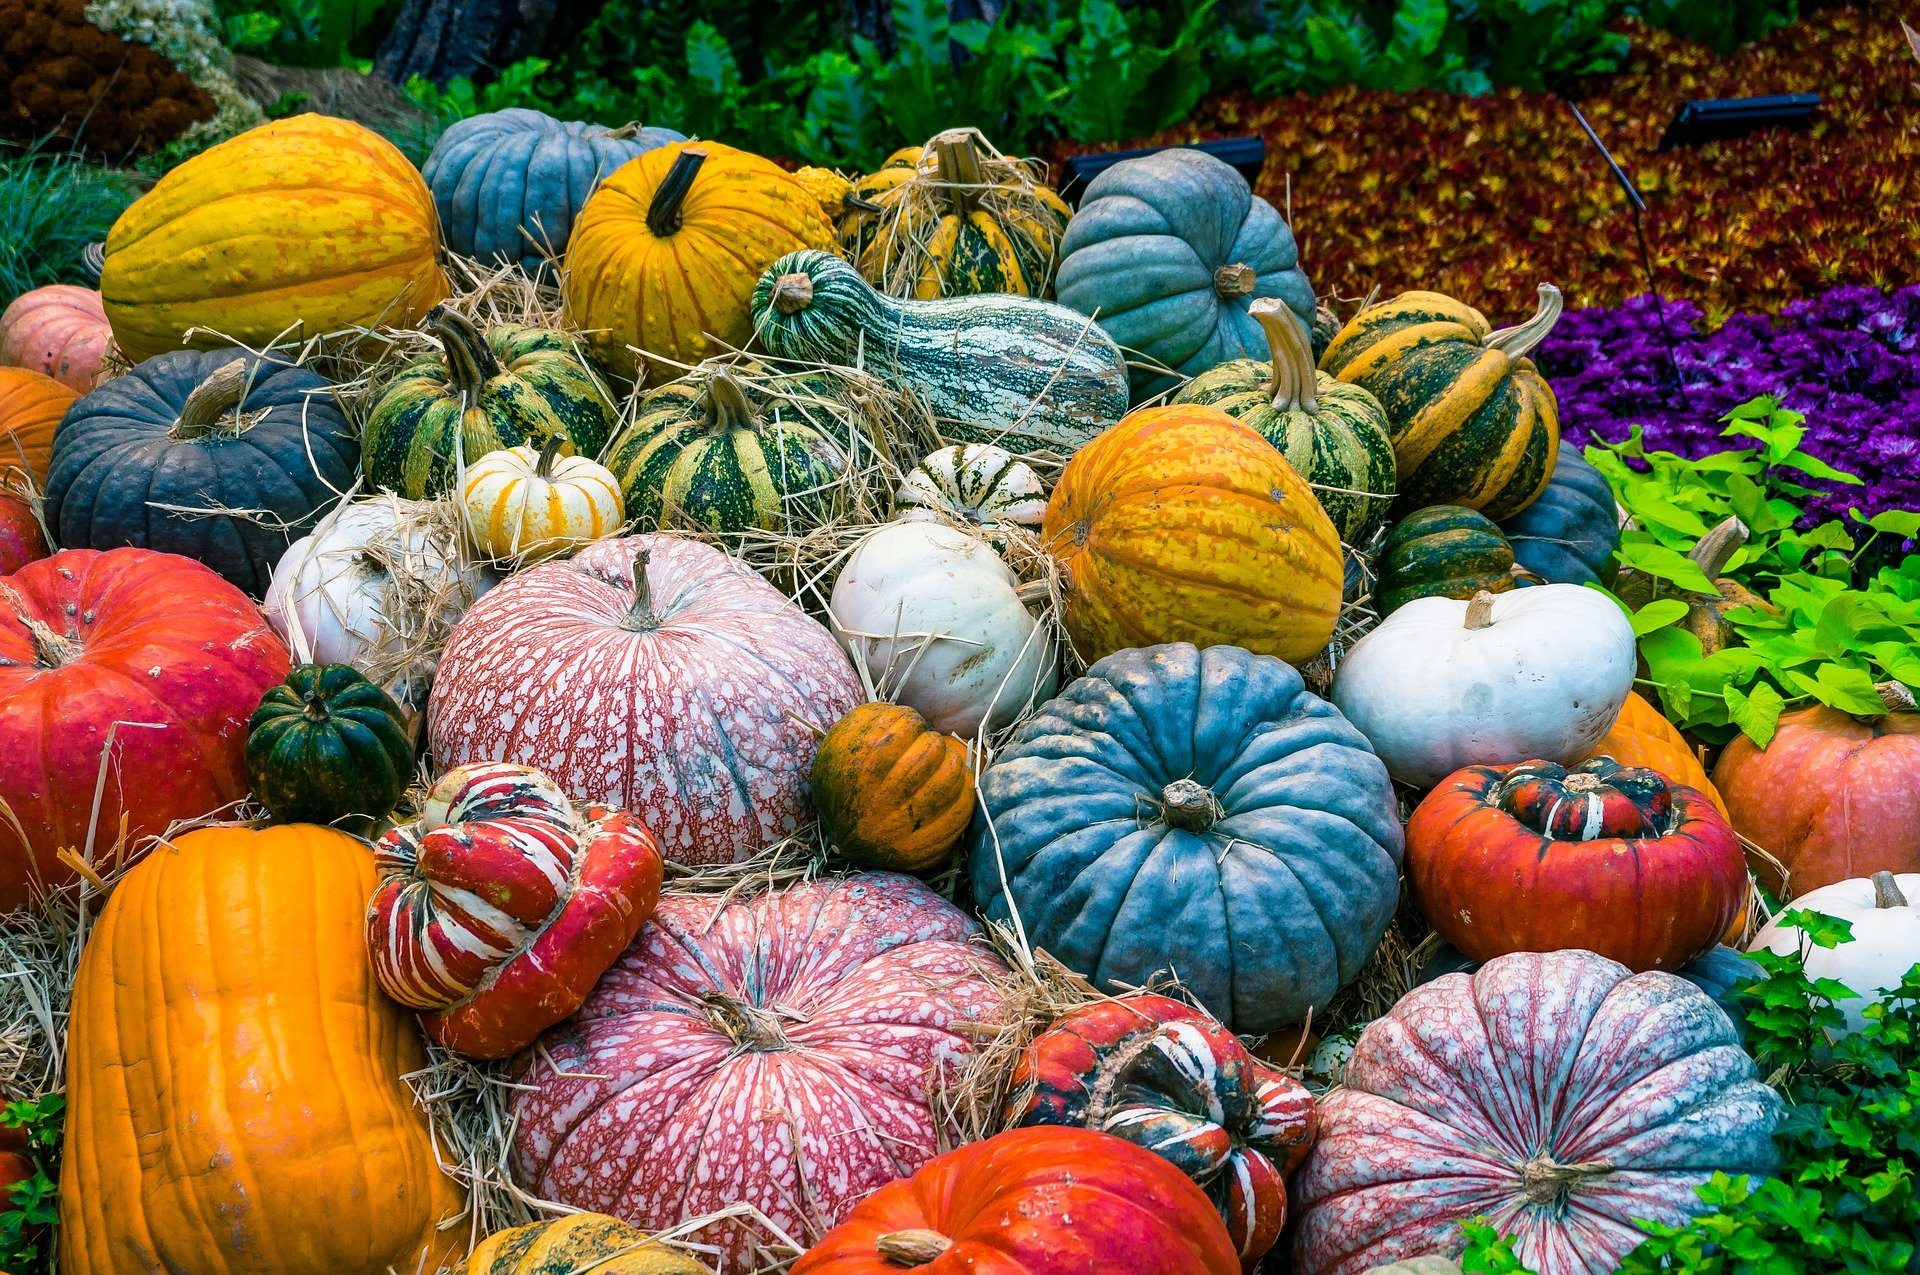 Photo of Colorful Pumpkins on the Ground